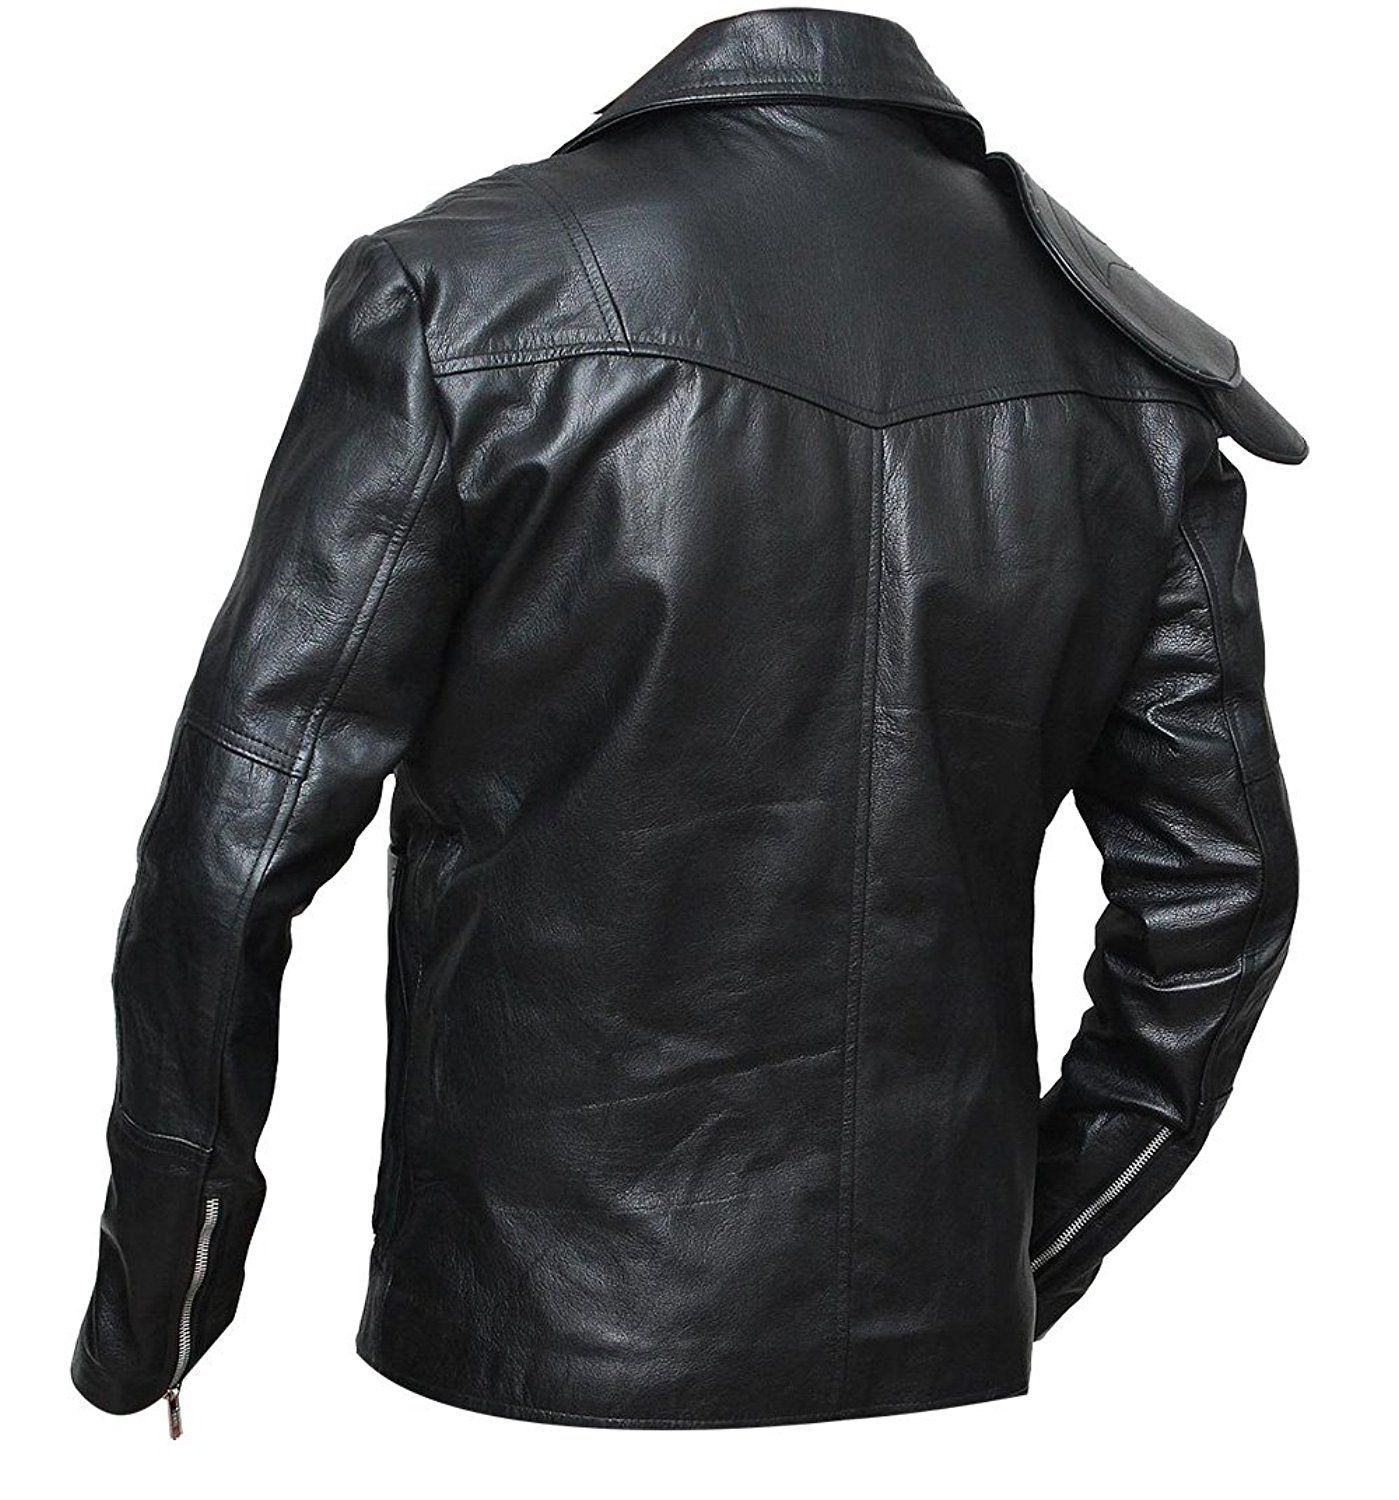 Mad Max Fury Road Motorcycle Synthetic Leather Jacket At Amazon Men S Clothing Store Leather Jacket Jackets Mad Max Costume [ 1500 x 1399 Pixel ]